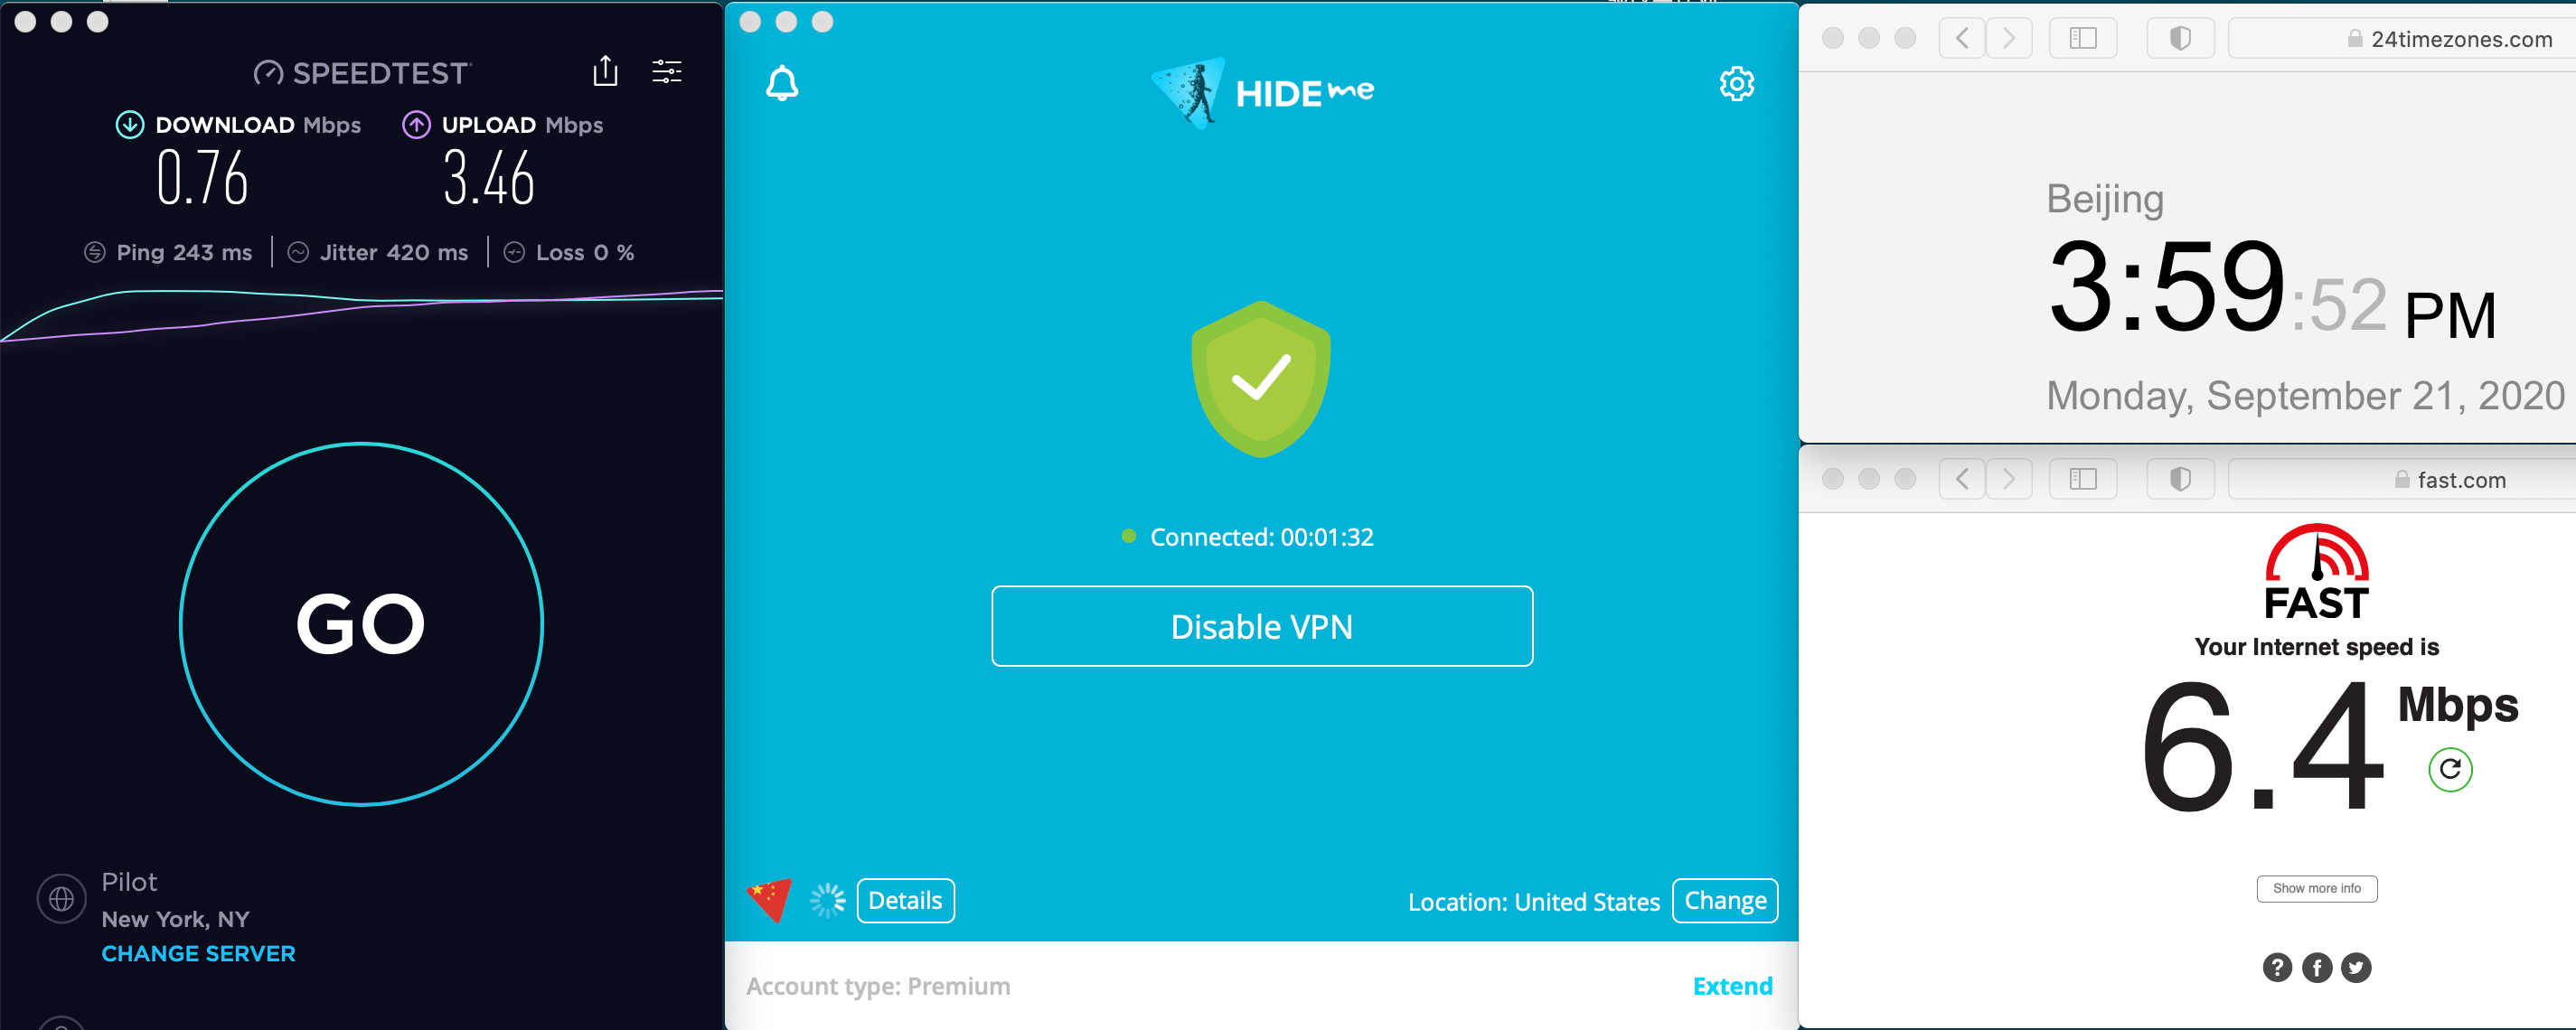 Macbook Hideme VPN Auto Streaming USA For Netflix US 中国VPN 翻墙 科学上网 速度测试 2020-09-21 at 16.00.15